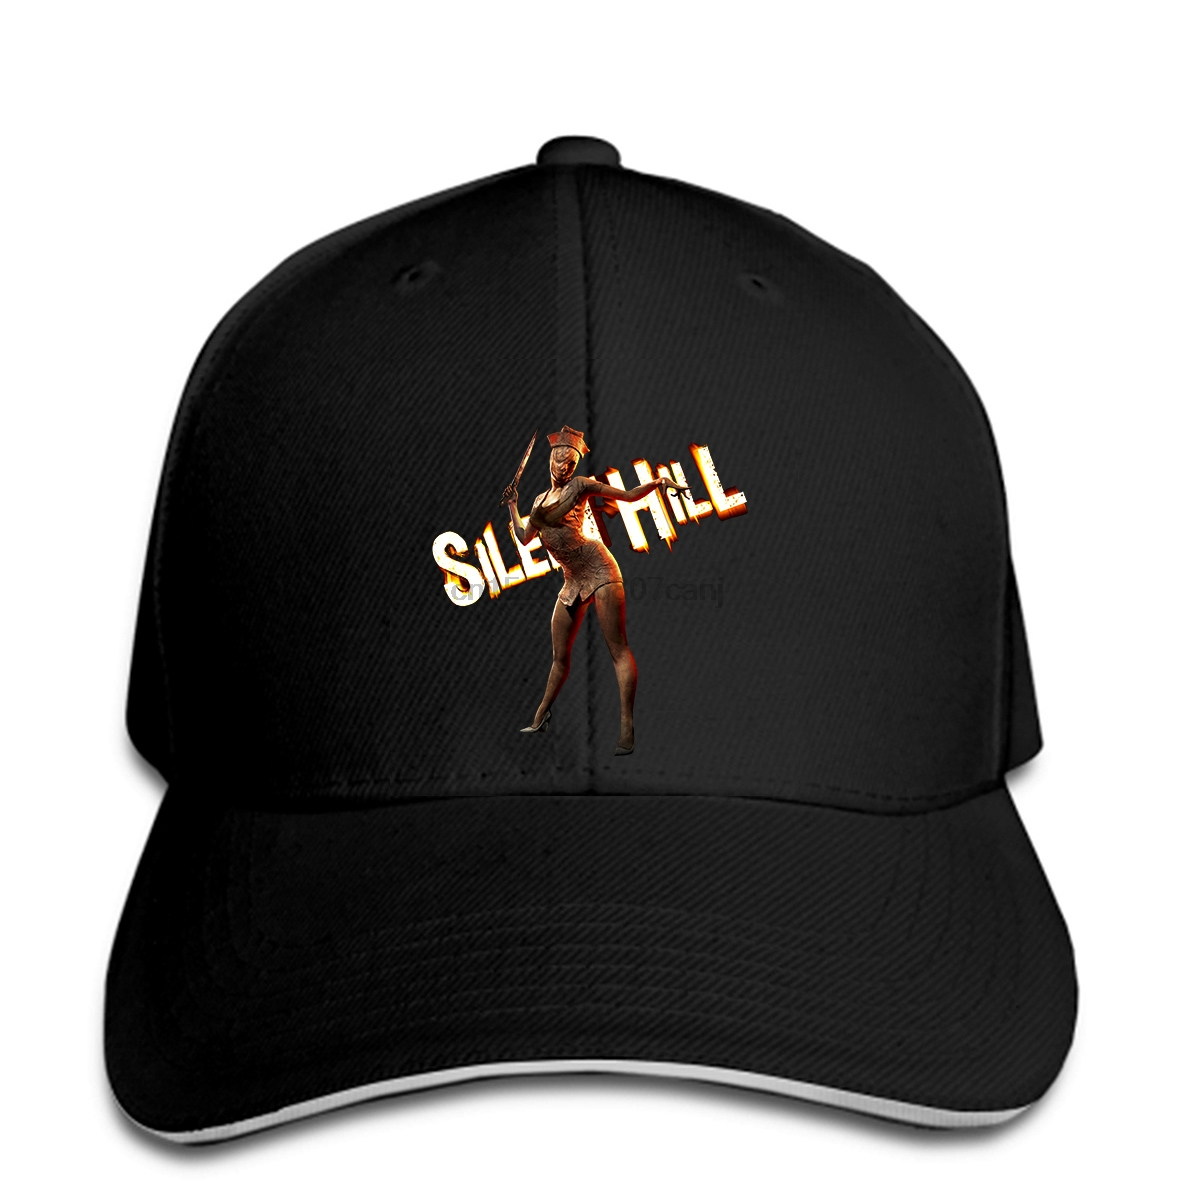 Baseball cap Silent Hill Homecoming Video Game Men's snapback image